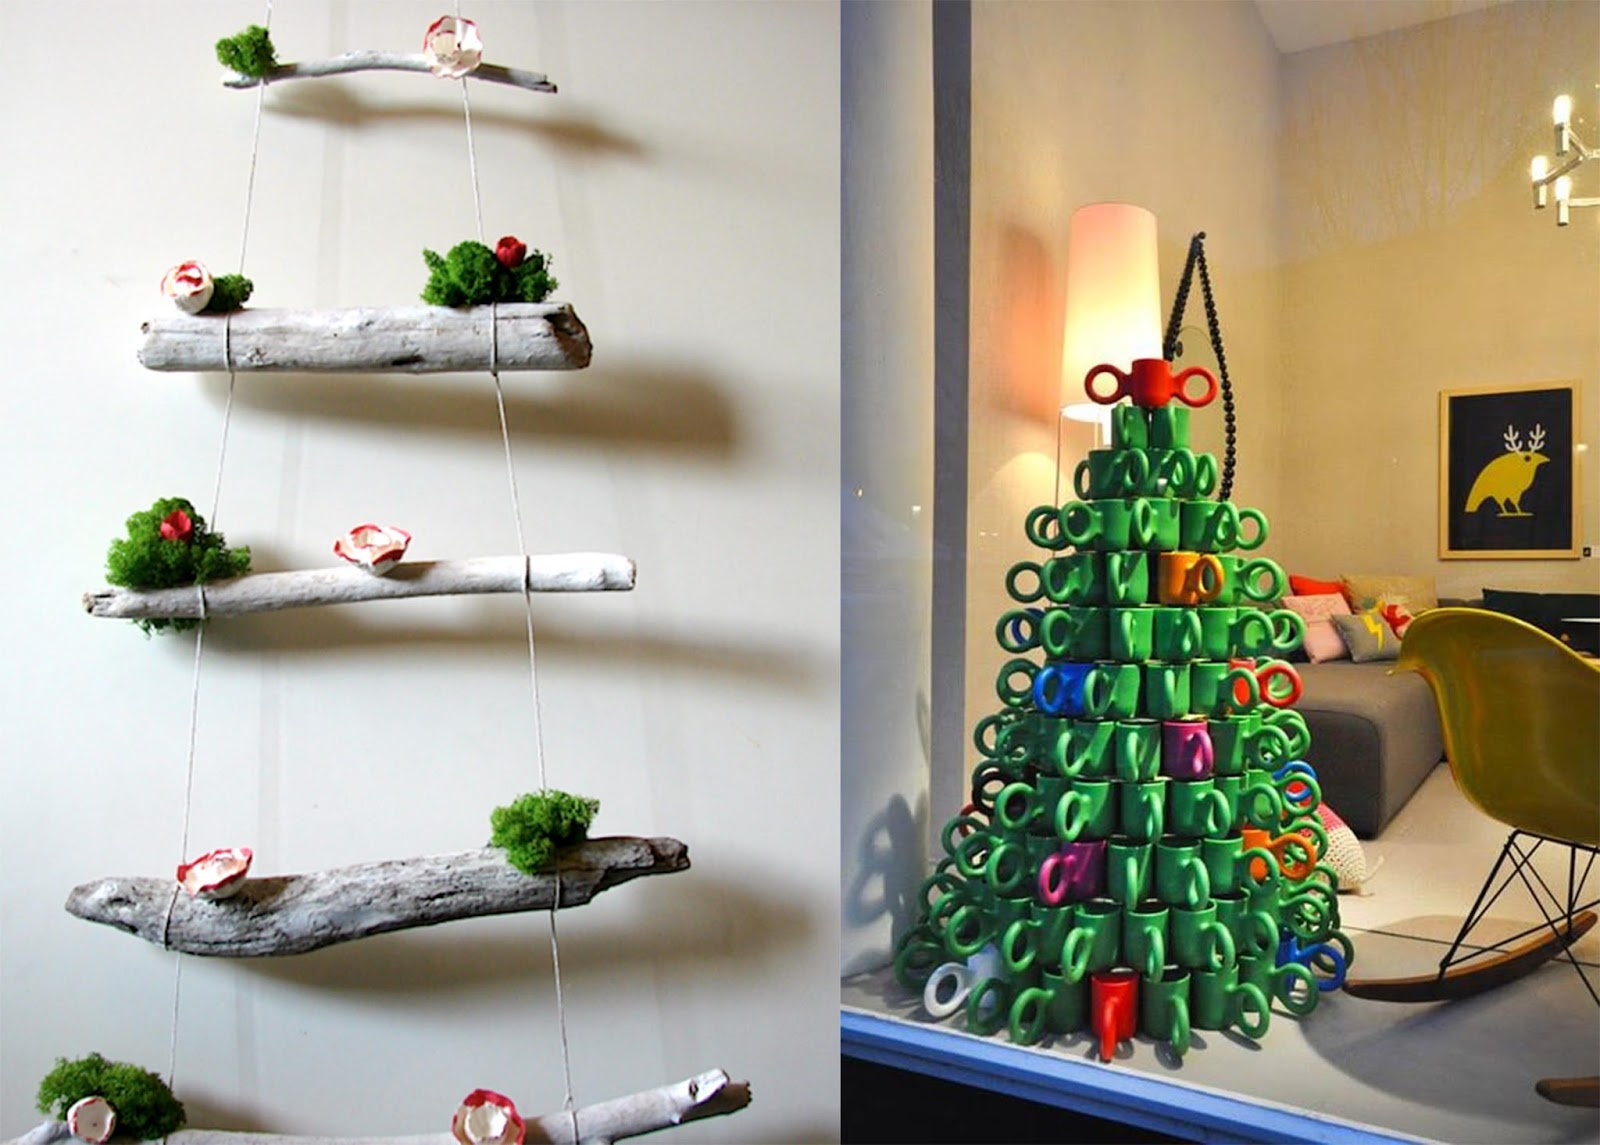 Amato Idee originali per un Natale creativo | ARC ART blog by Daniele Drigo FW53